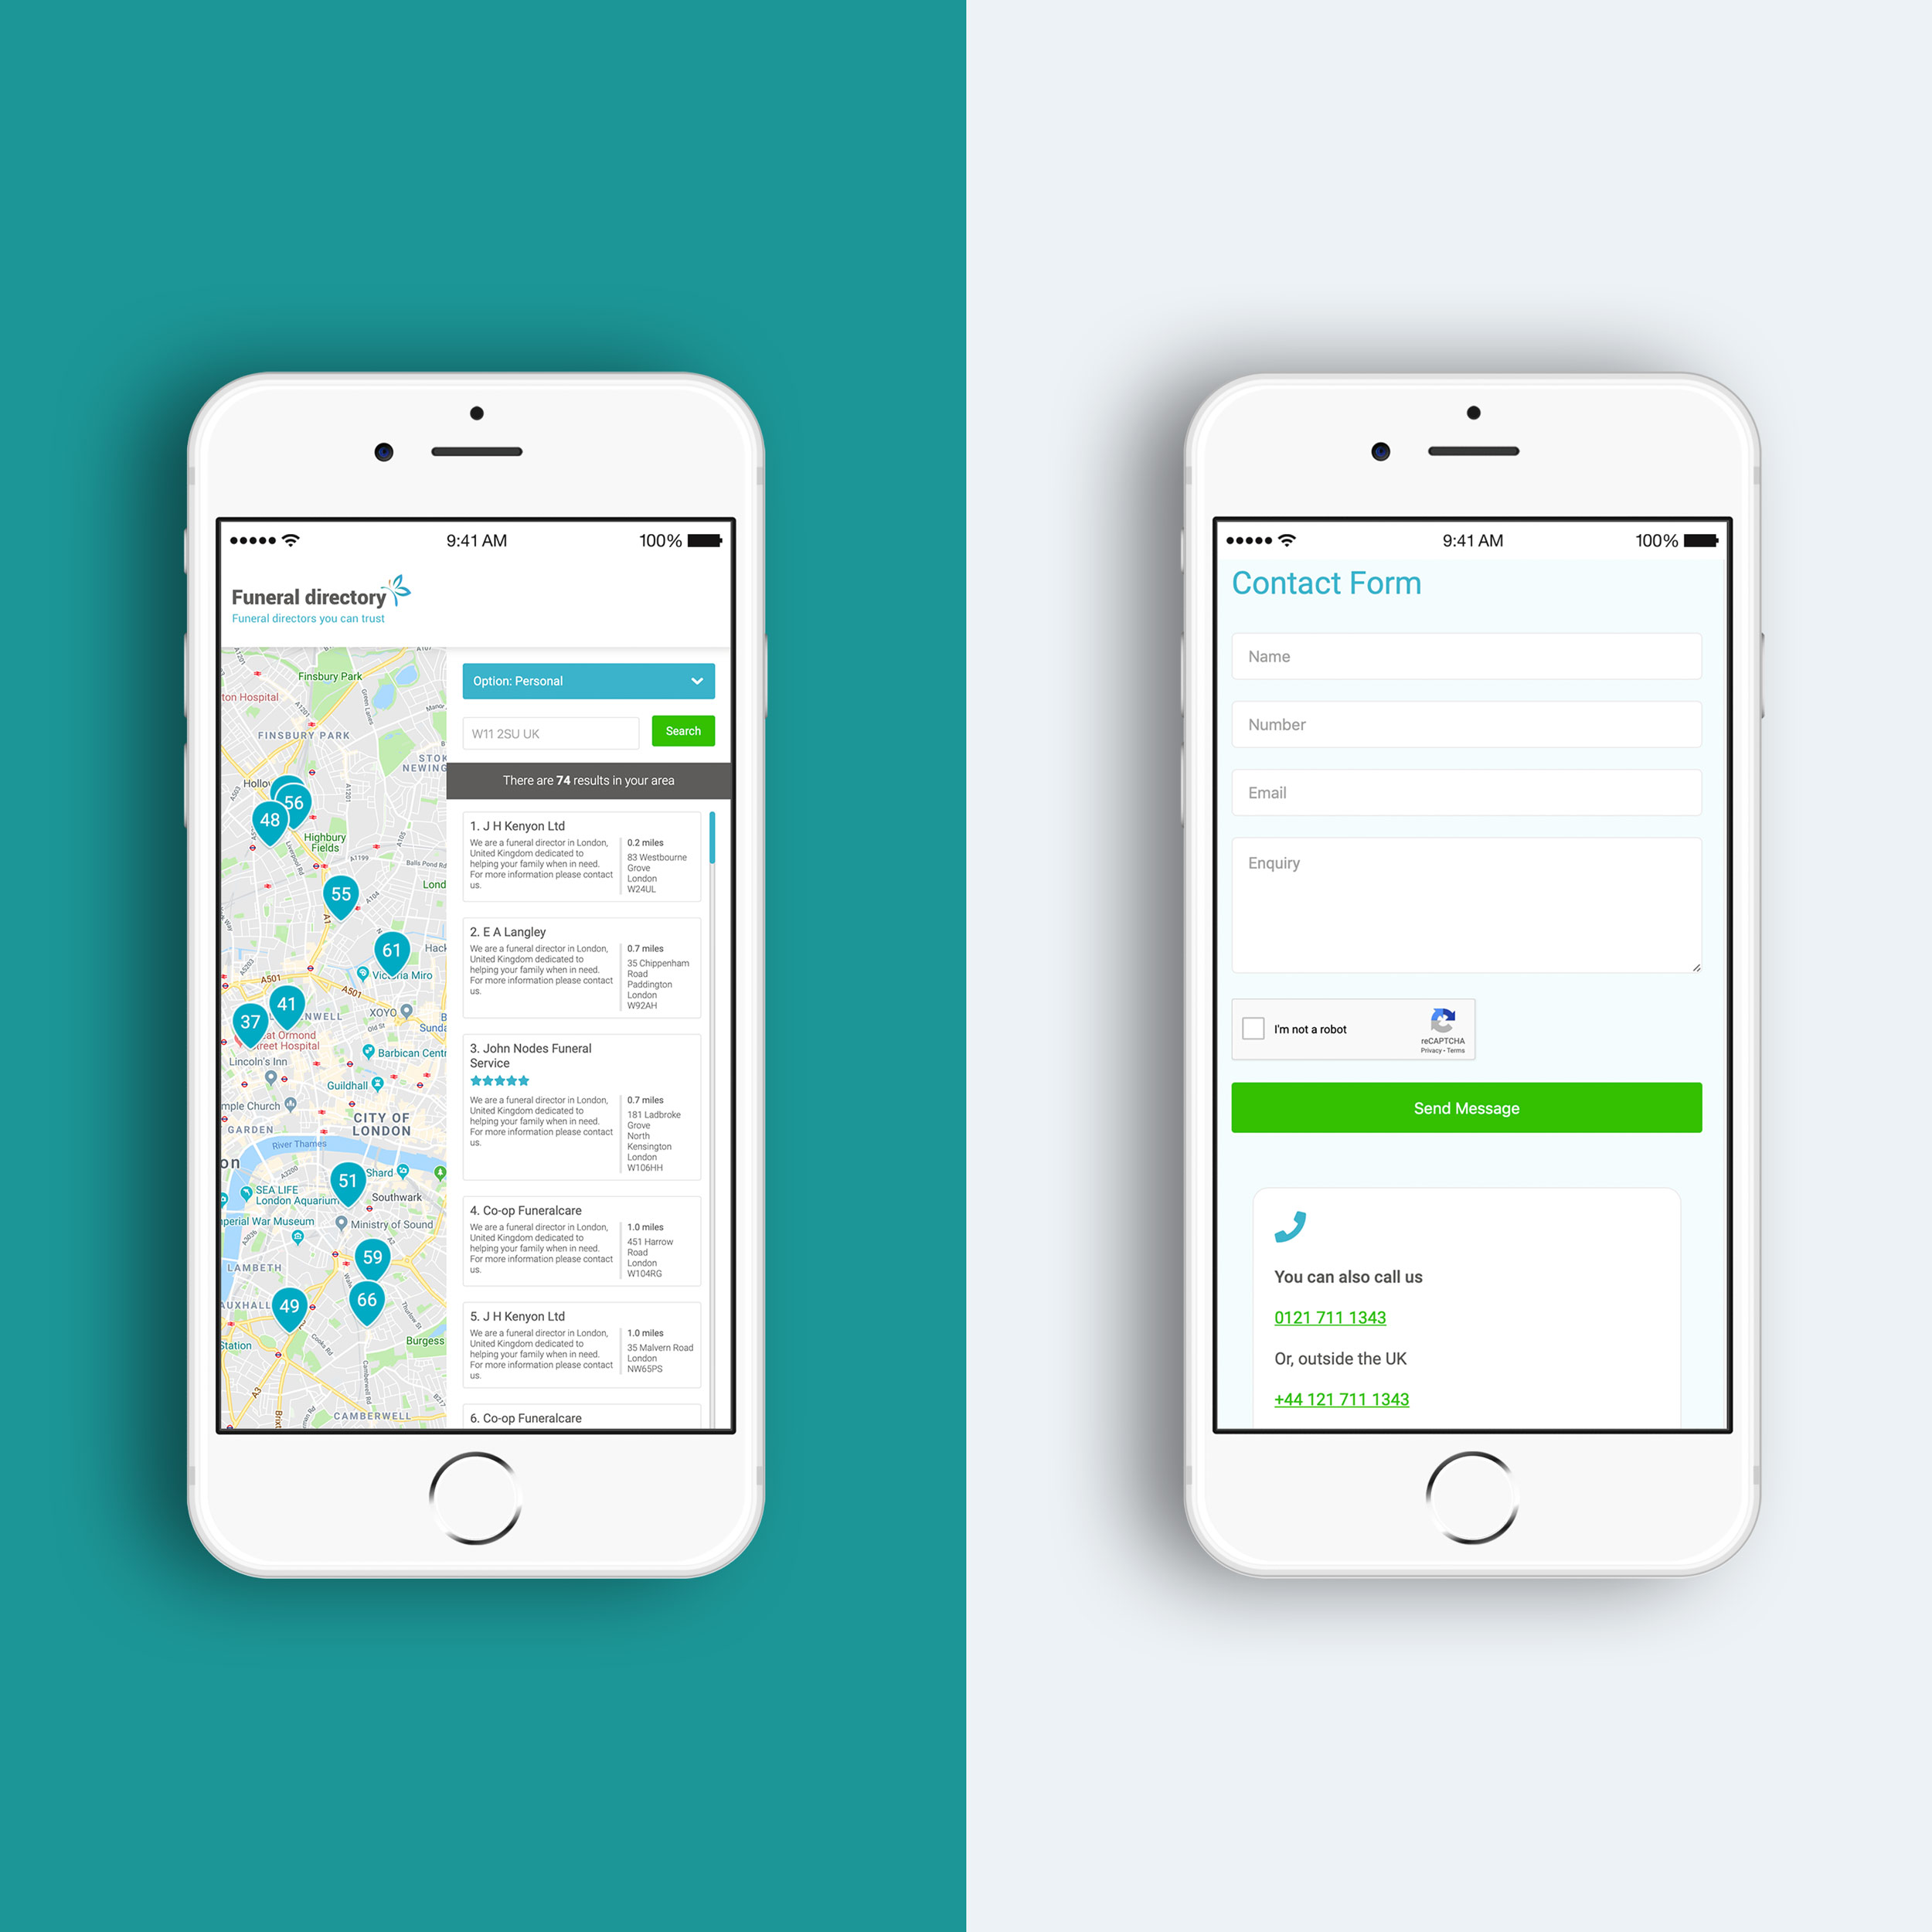 iphone mockup web design